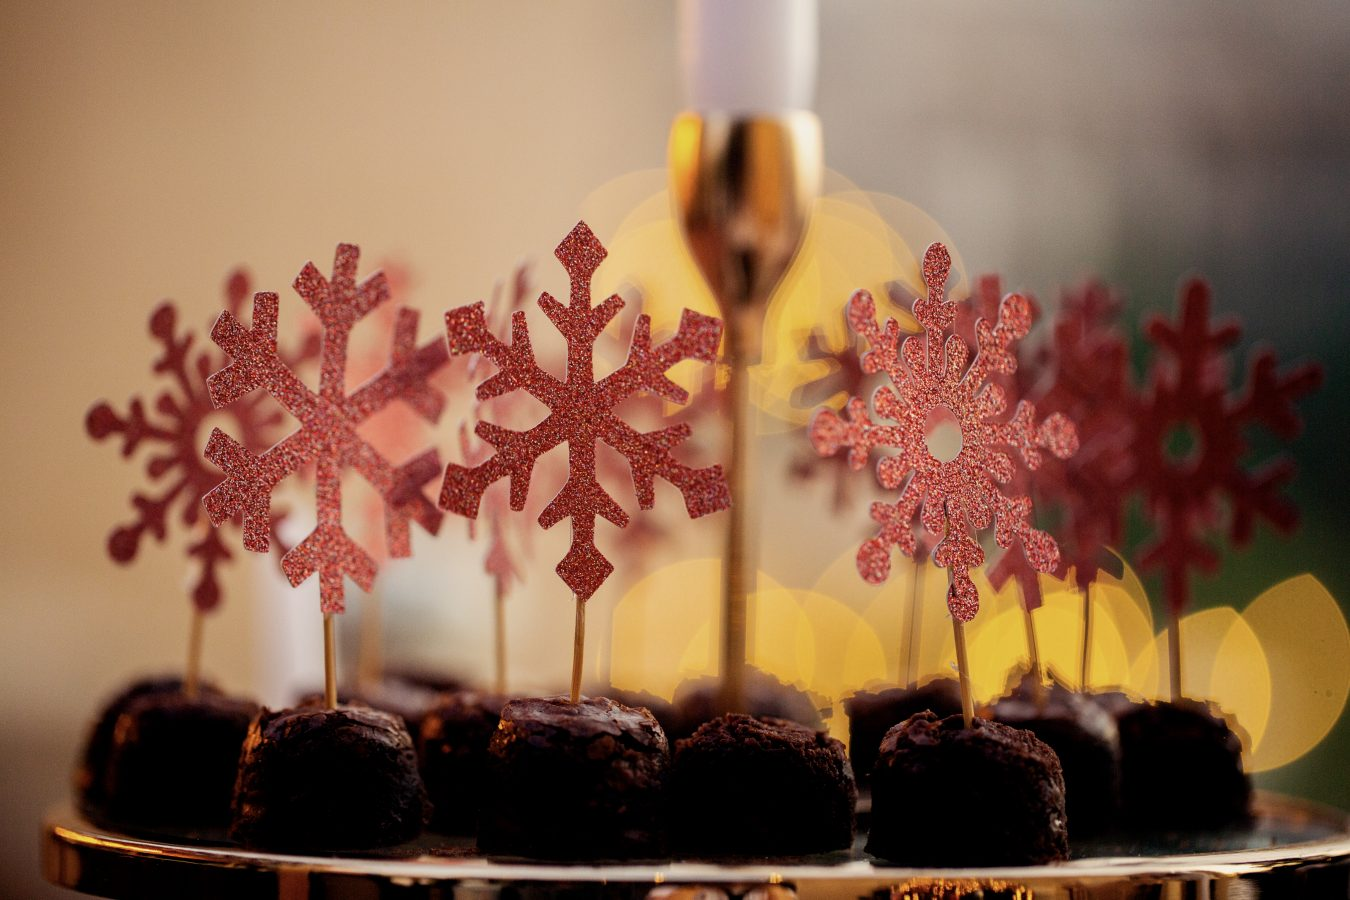 Festive treats with glittery snowflake decorations